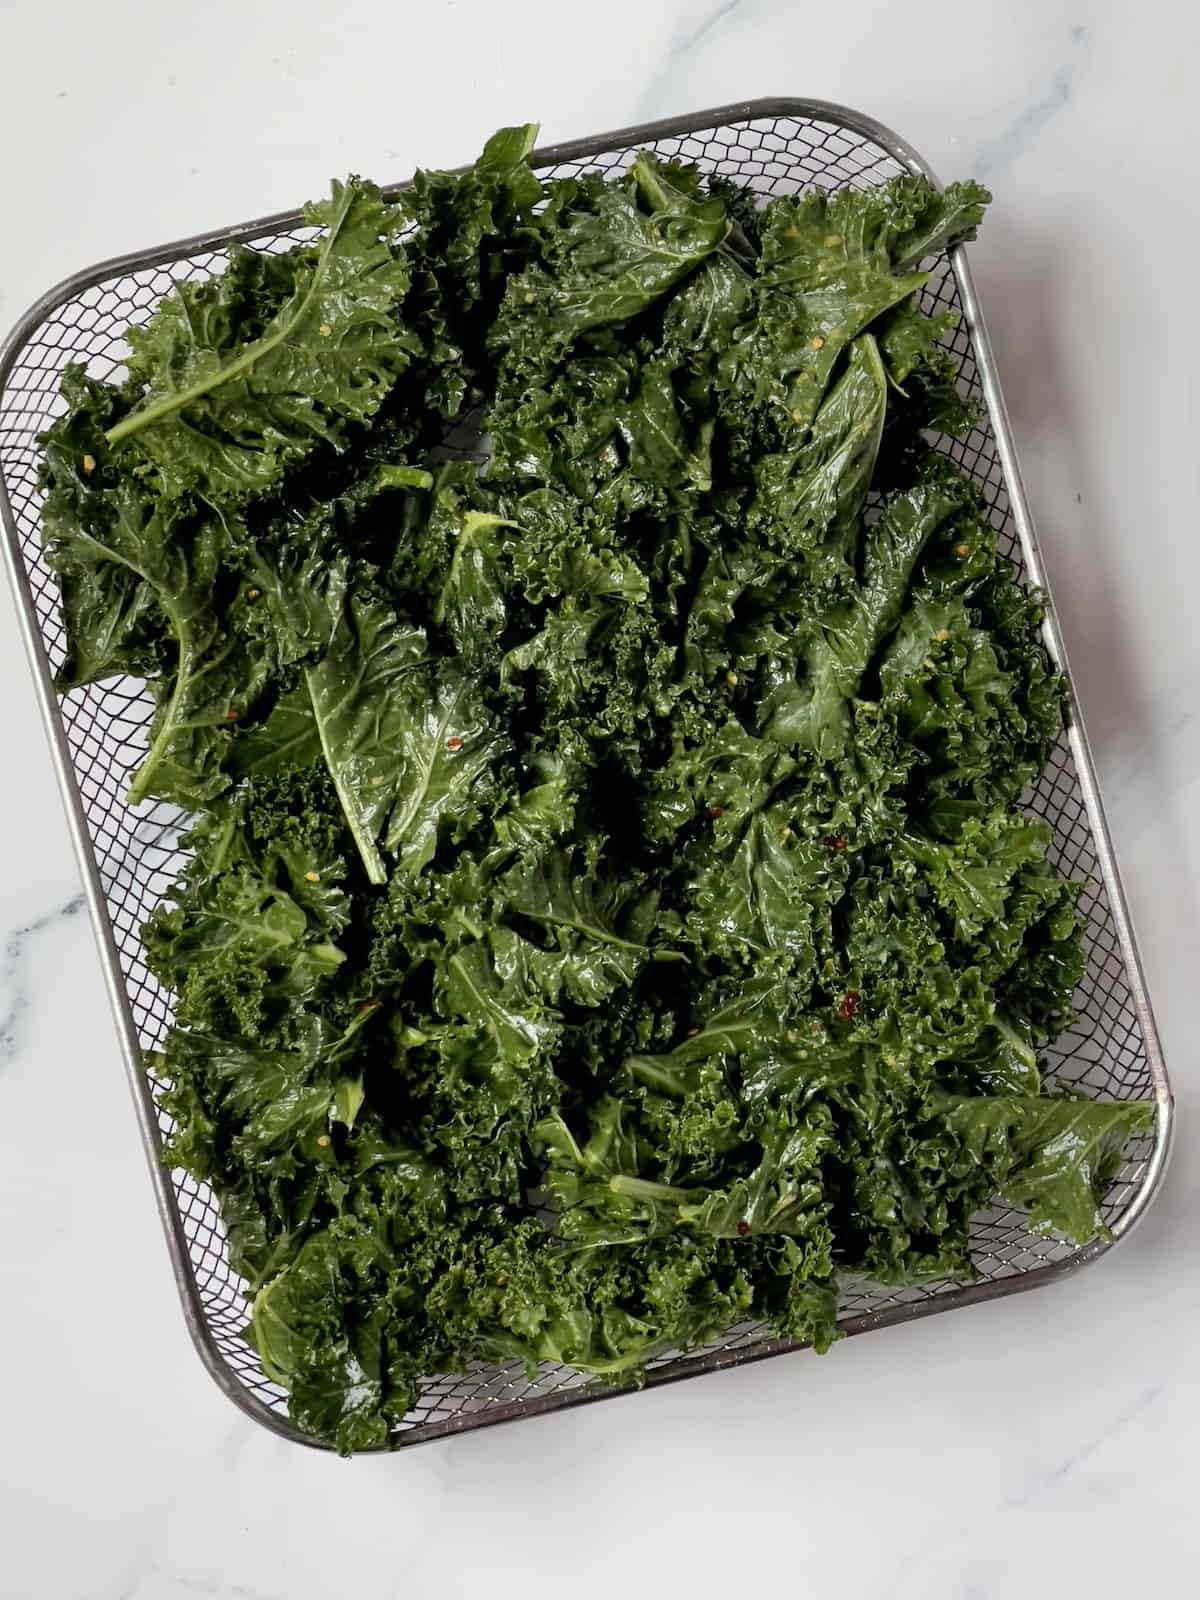 uncooked kale on an air fryer basket